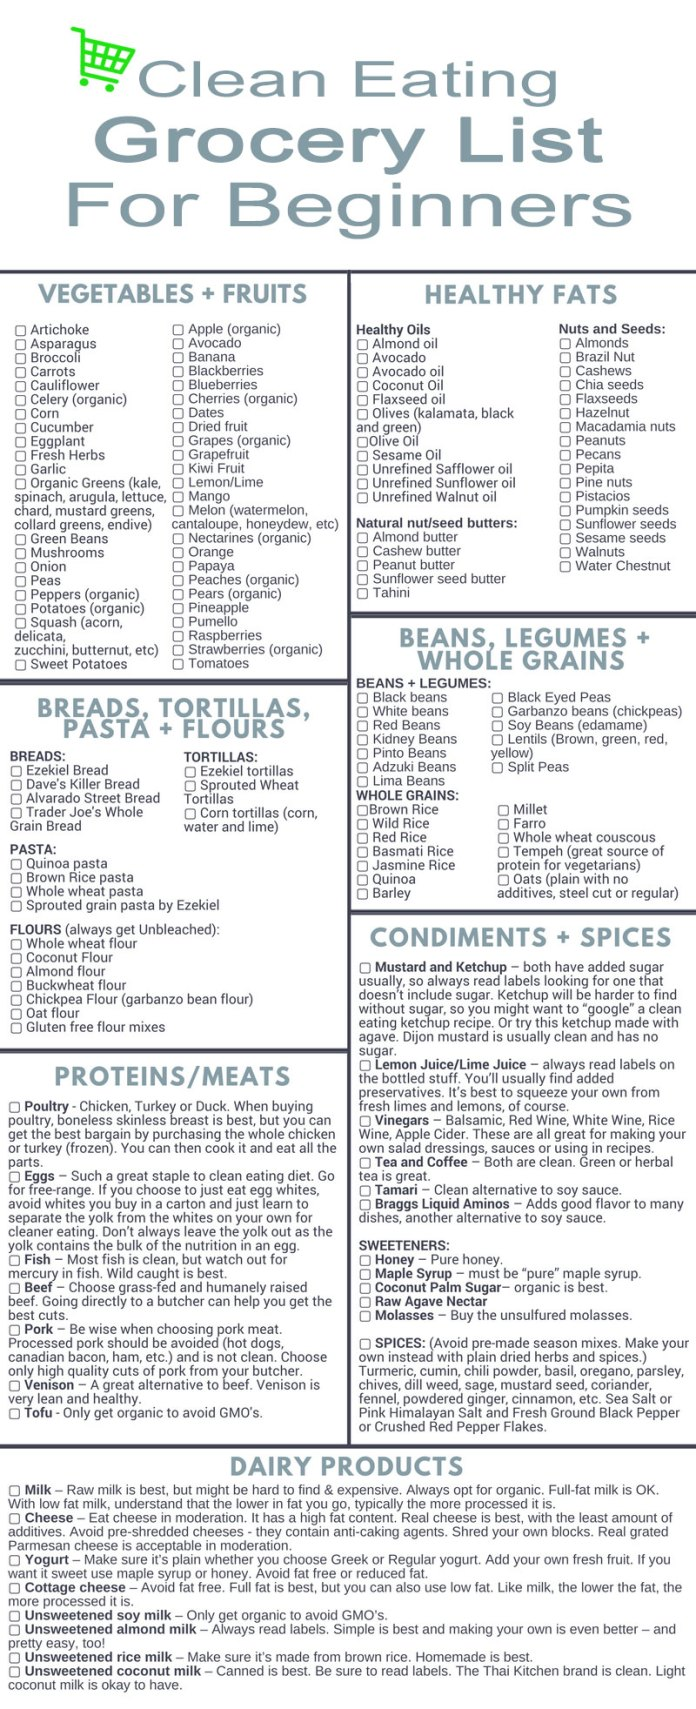 Clean-eating-grocery-list products women should buy to be healthy